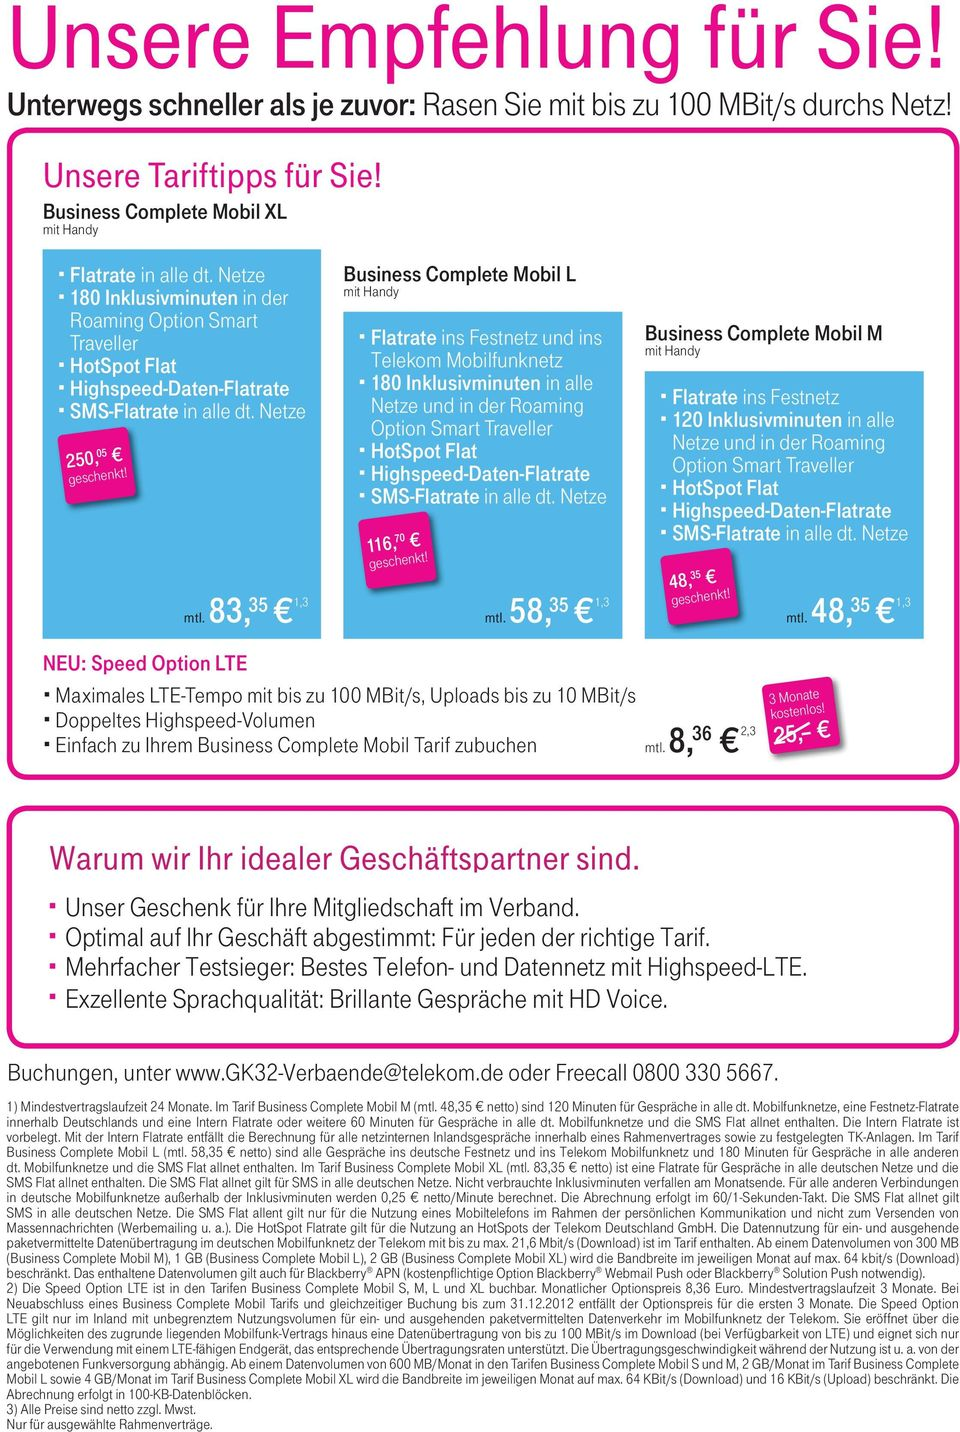 Netze 250, 05 Business Complete Mobil L Flatrate ins Festnetz und ins Telekom Mobilfunknetz 180 Inklusivminuten in alle Netze und in der Roaming Option HotSpot Flat Highspeed- Daten-Flatrate